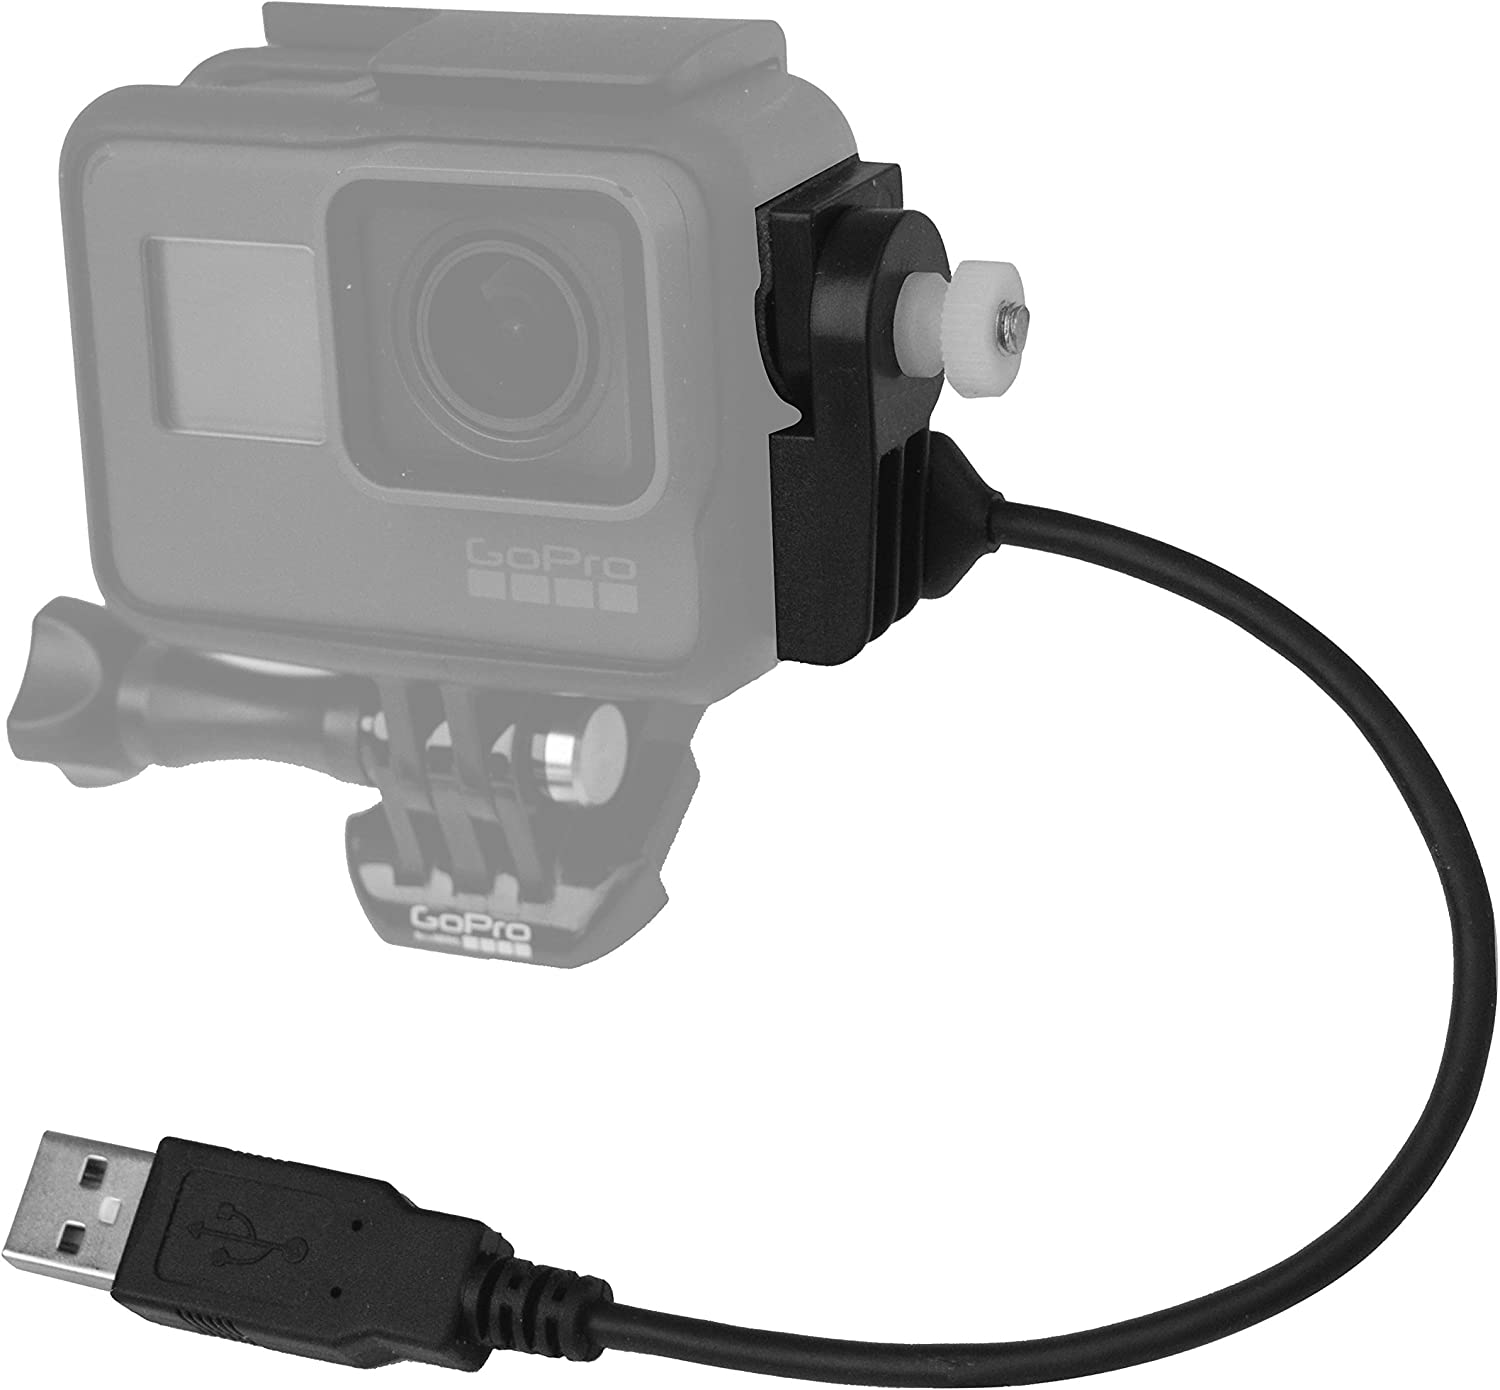 HERO6 with 48 Cable HERO7 Black /& Hero 2018 X~PWR-H5 48 All-Weather External Power Kit for GoPro HERO5